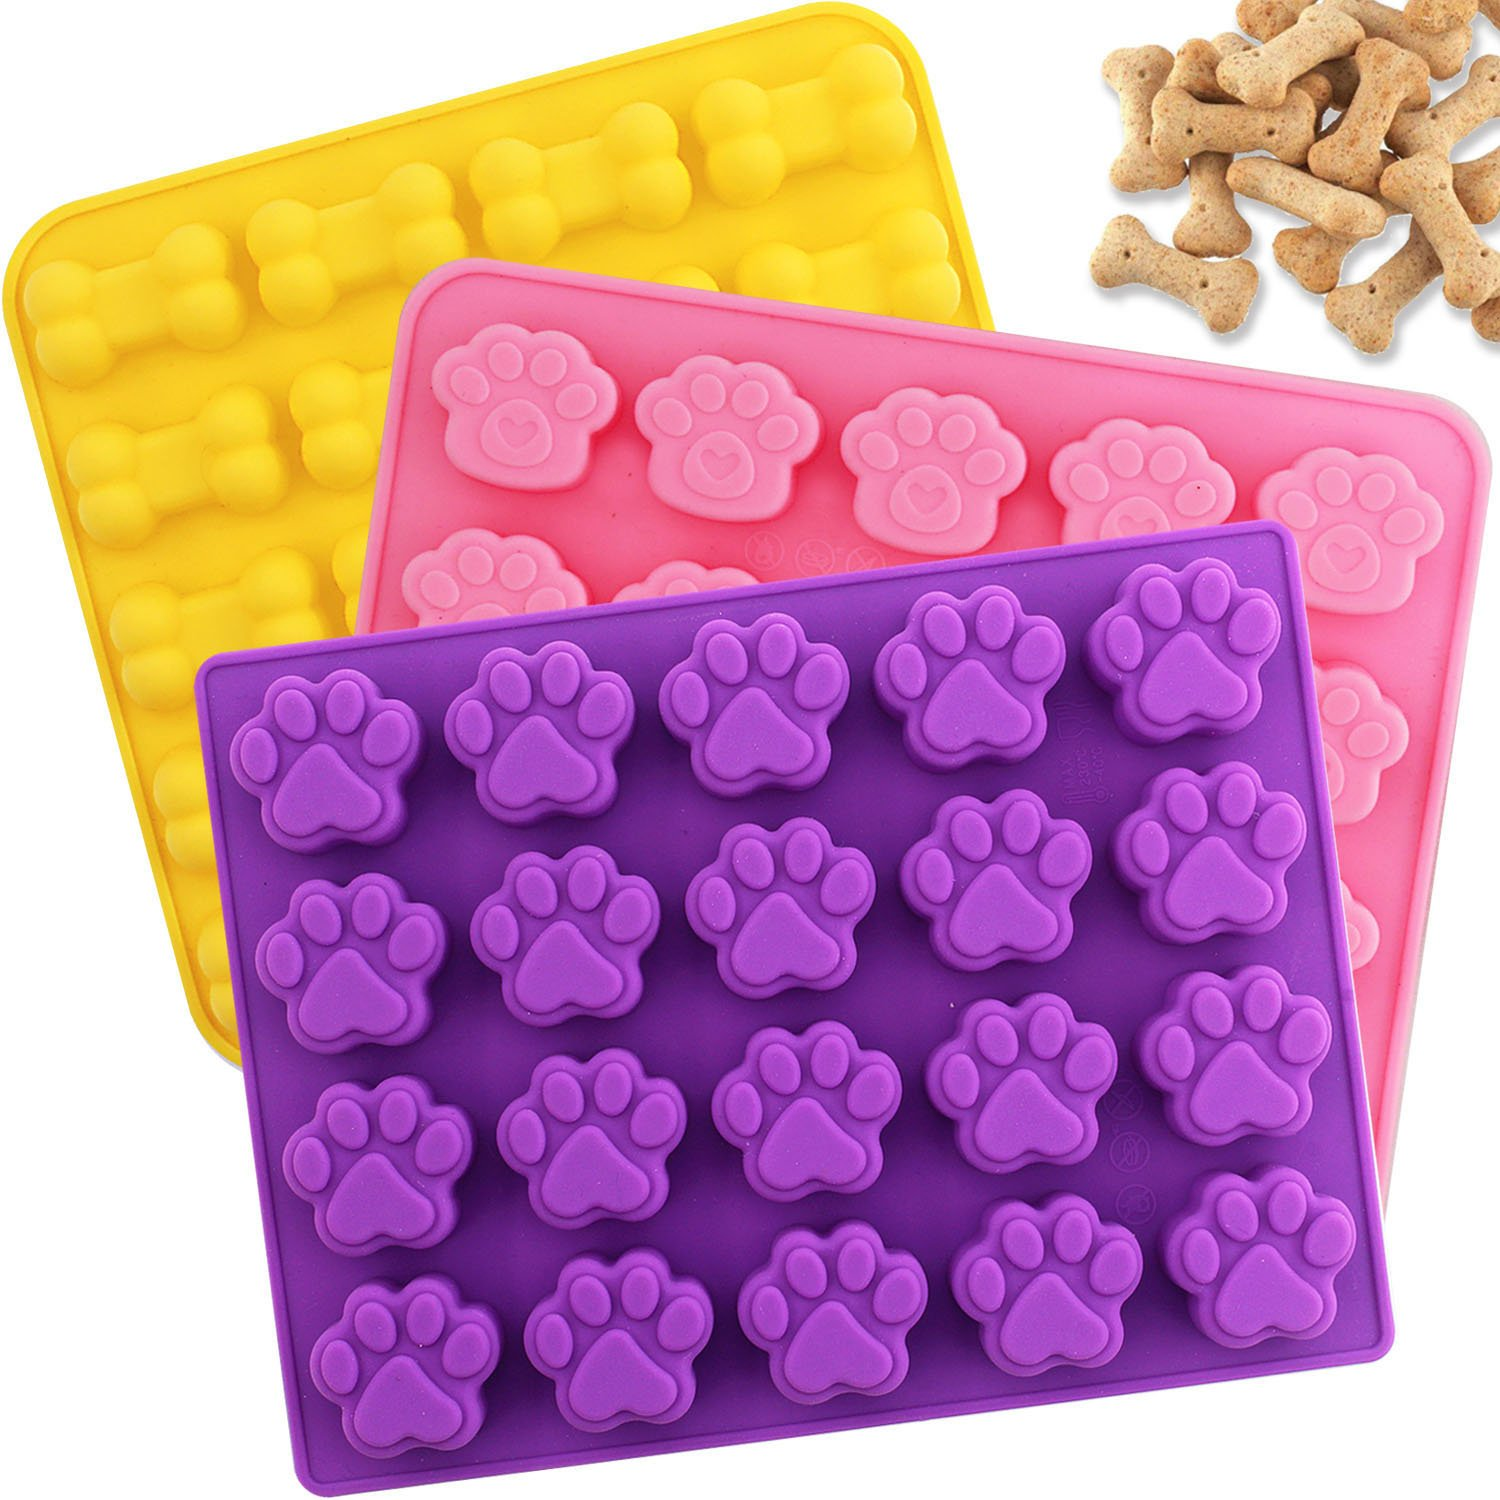 APLANET Silicone Chocolate Mold - 3pcs 20-Cavity Dog Bone and Paw Molds for Puppy Treats, Making Ice Cubes, Biscuits and Candies APLANET EU